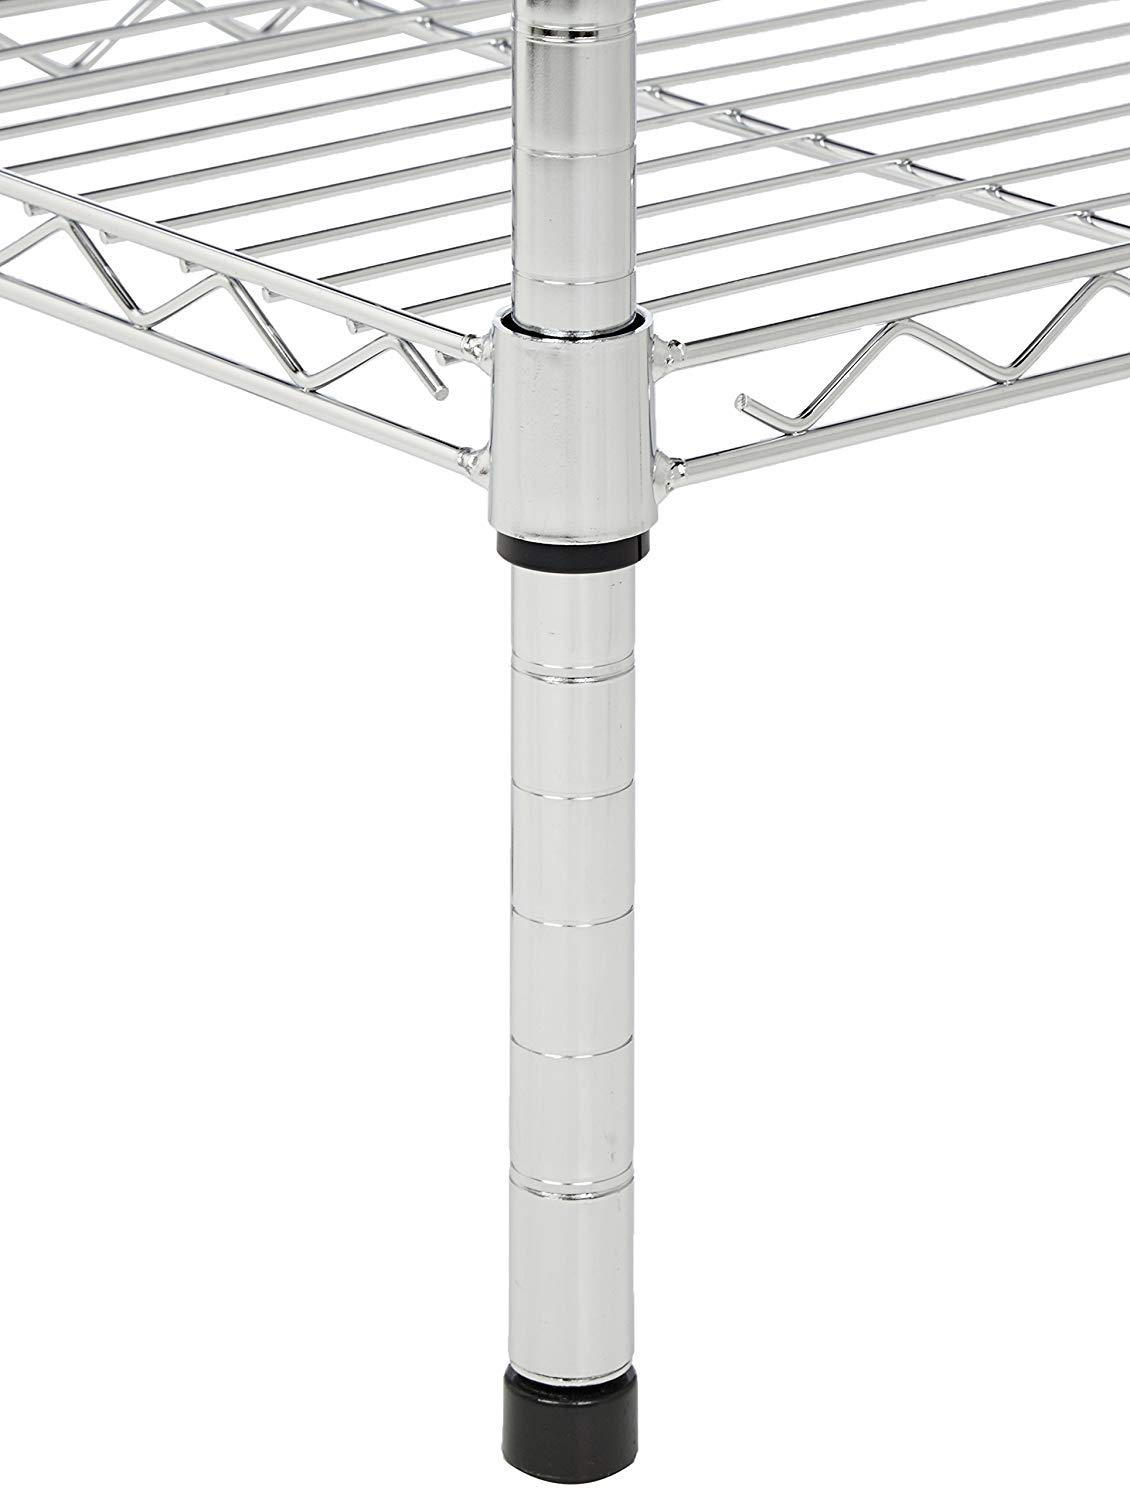 Commercial Chrome Wire Shelving Posts 24'' - 4 Posts by L and J